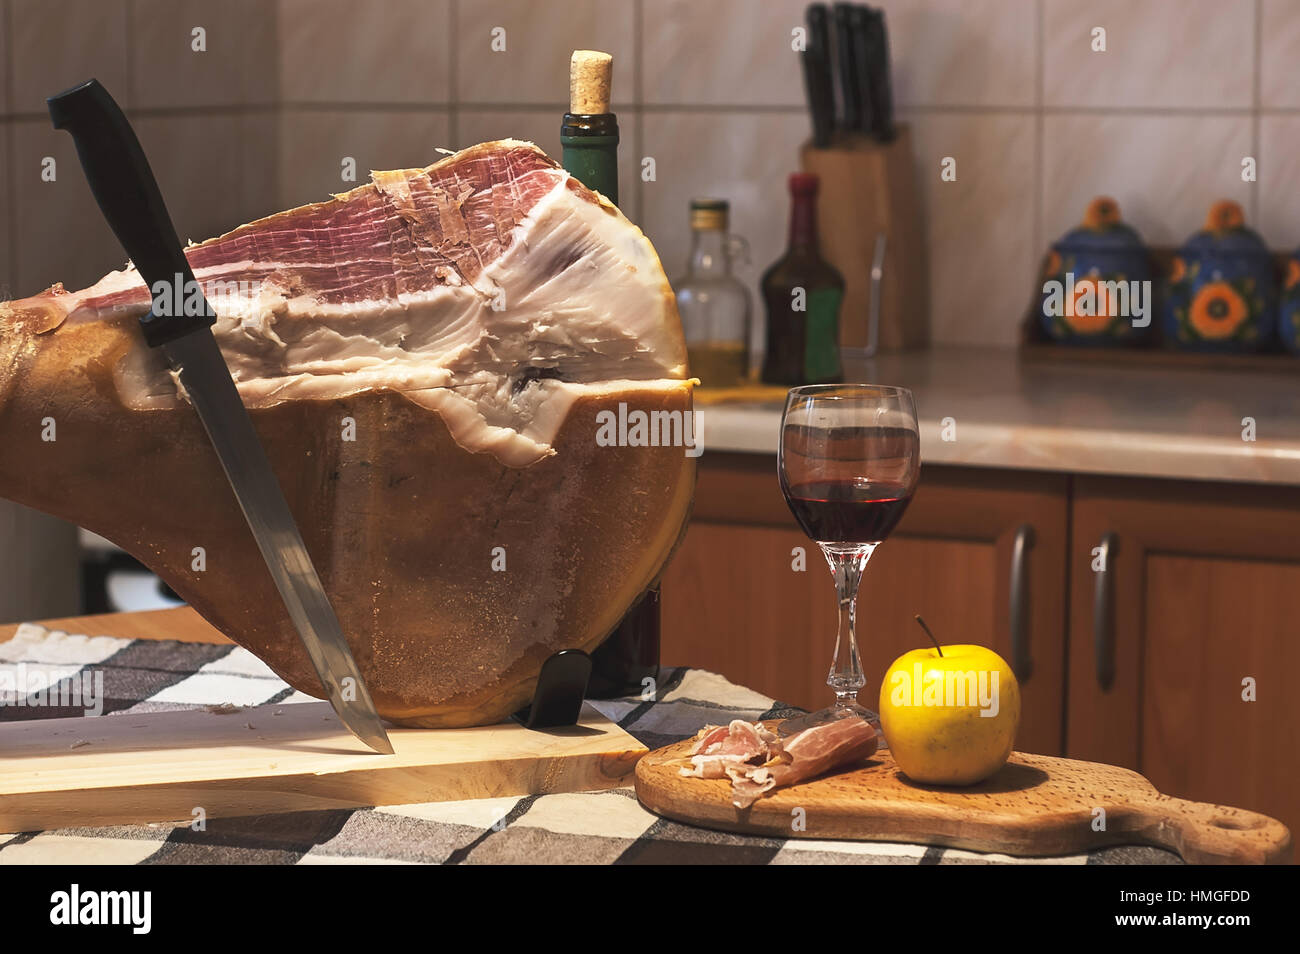 Spanish Jamon Serrano on wooden tabla jamonera with knife, apple, glass and bottle of red wine. Home cooking, food - Stock Image